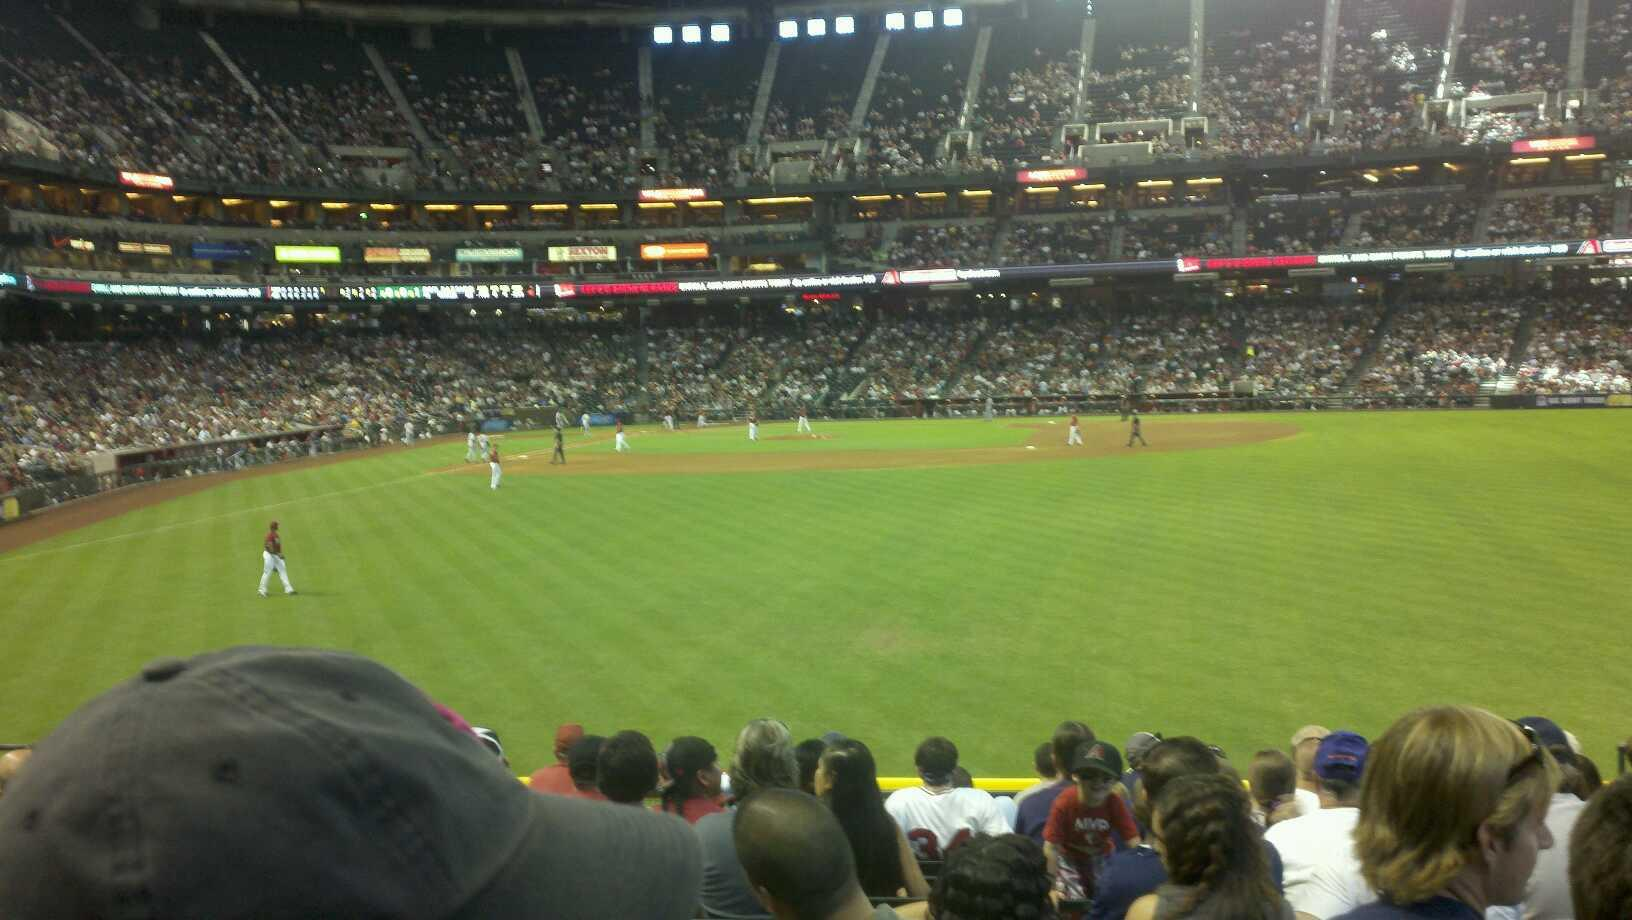 Chase Field Section 103 Row 27 Seat 8